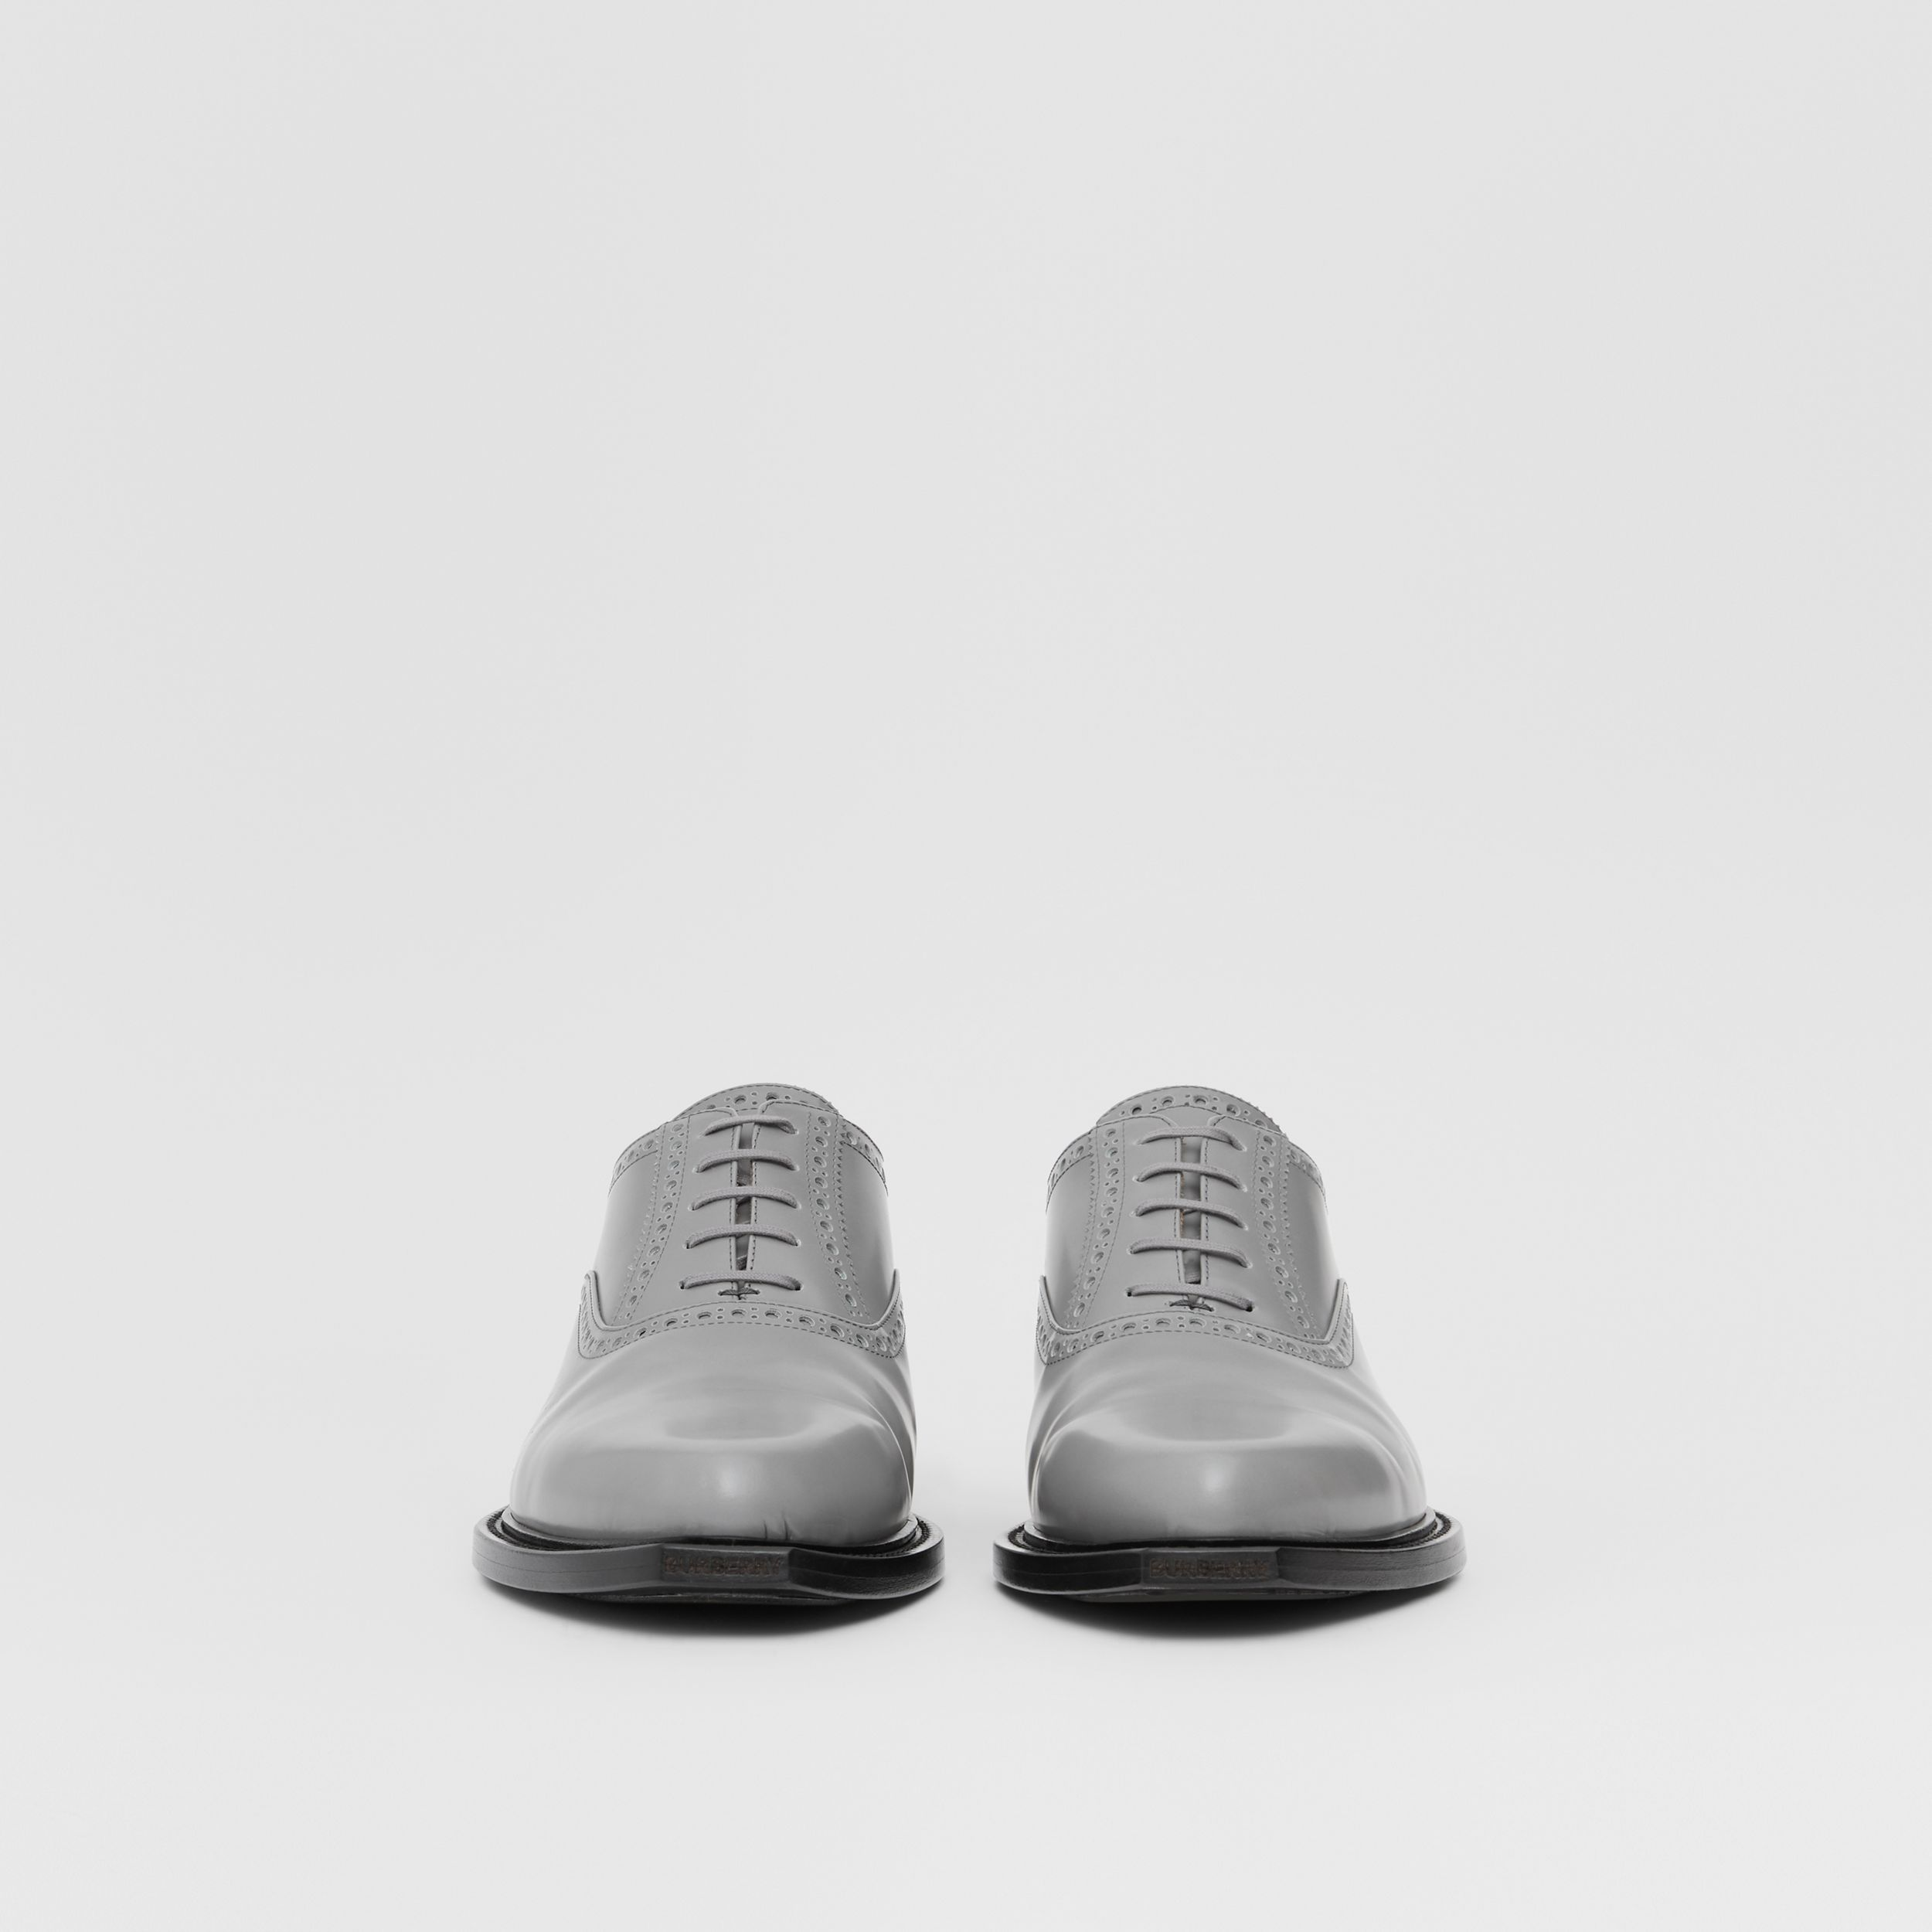 Leather Slingback Oxford Brogues in Cloud Grey - Men | Burberry - 4